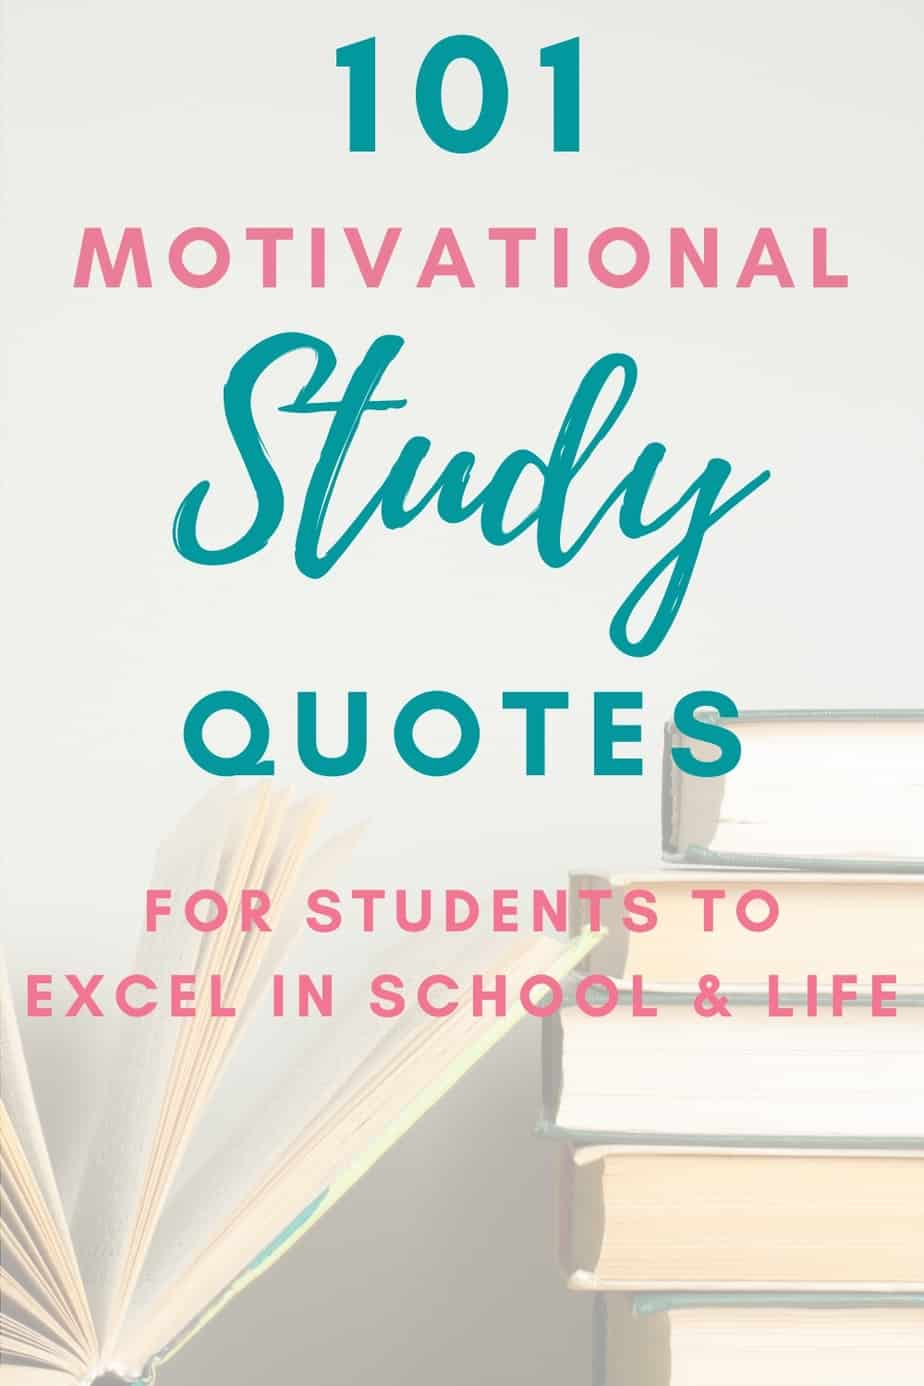 Motivational Study Quotes For Students